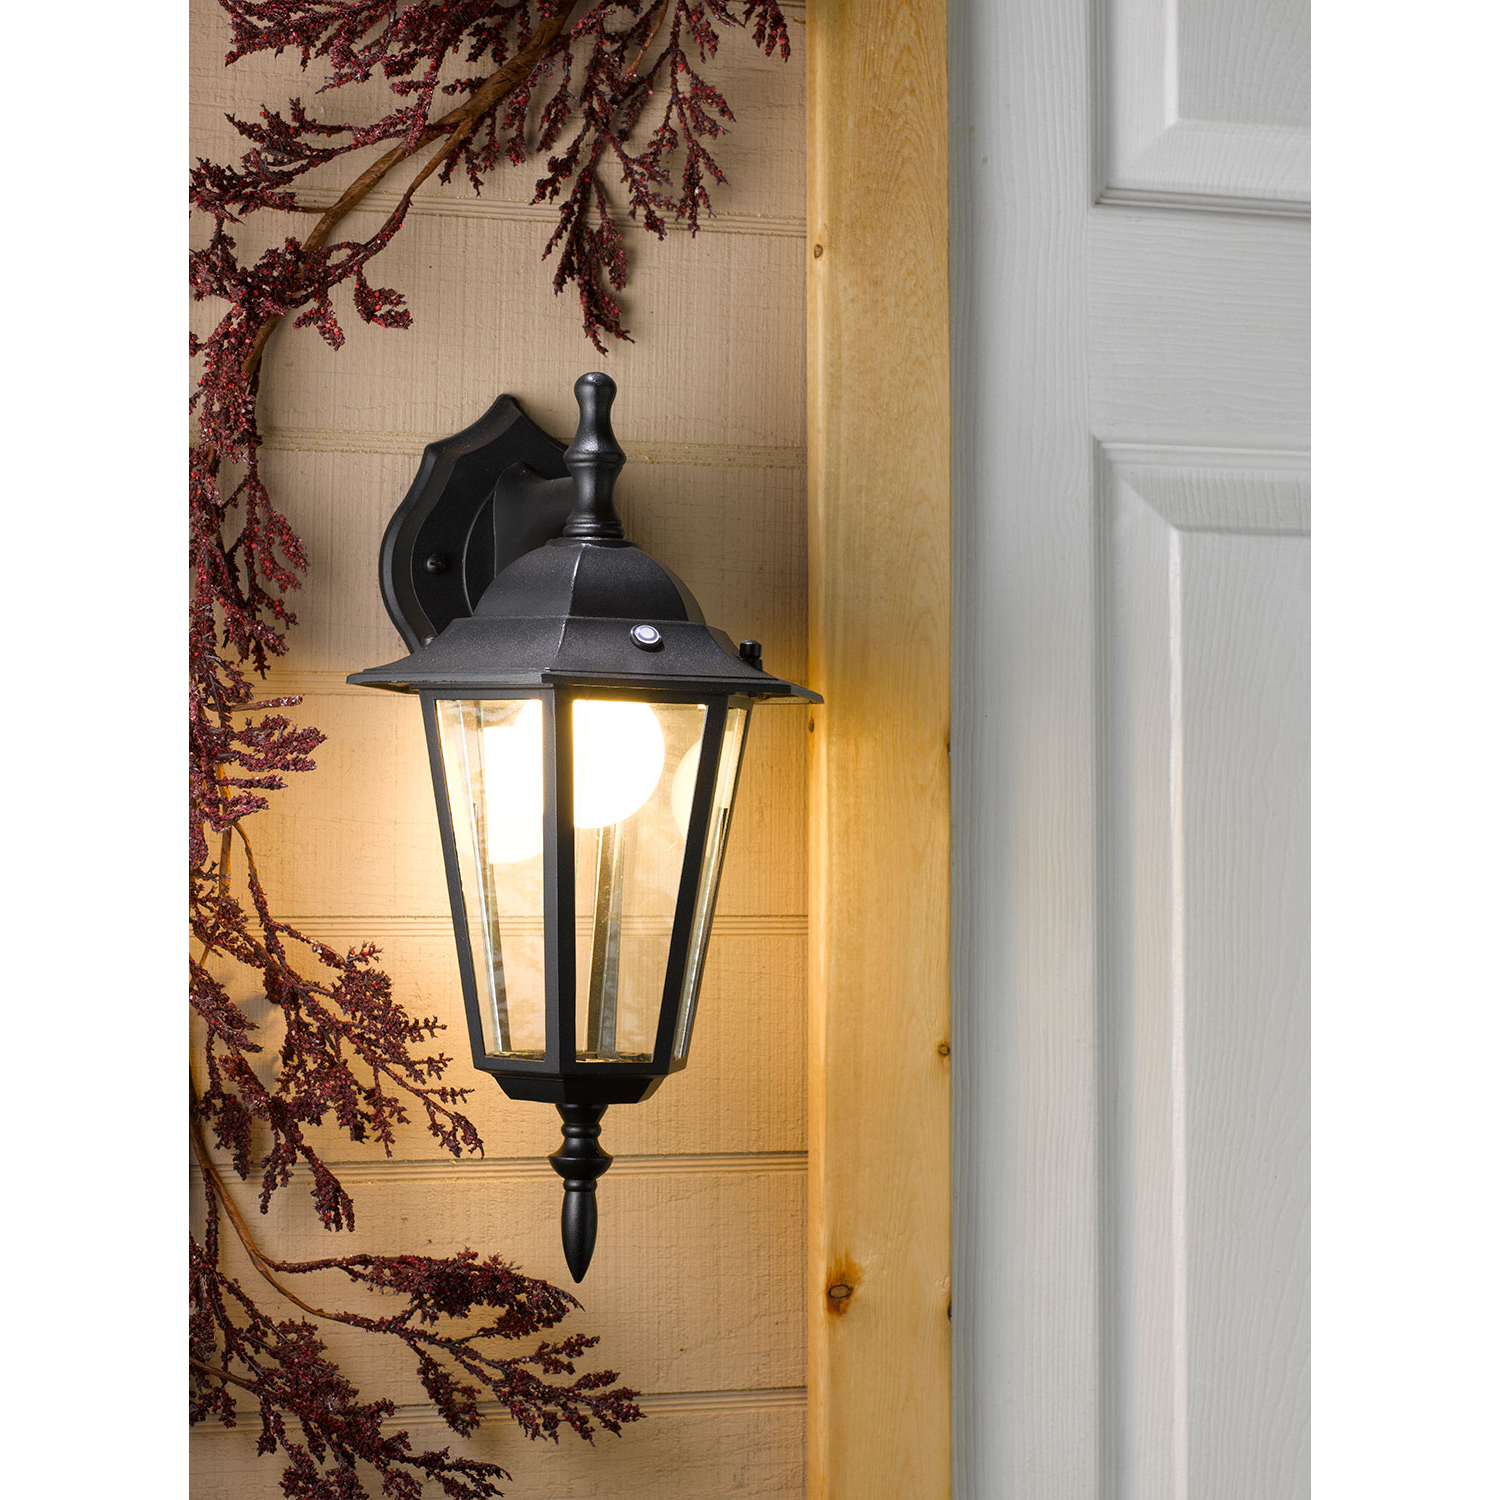 Well Liked Edinburg Black Outdoor Wall Lanterns With Regard To Honeywell Ss0601 08 Led Outdoor Wall Mount Lantern Light (View 12 of 20)